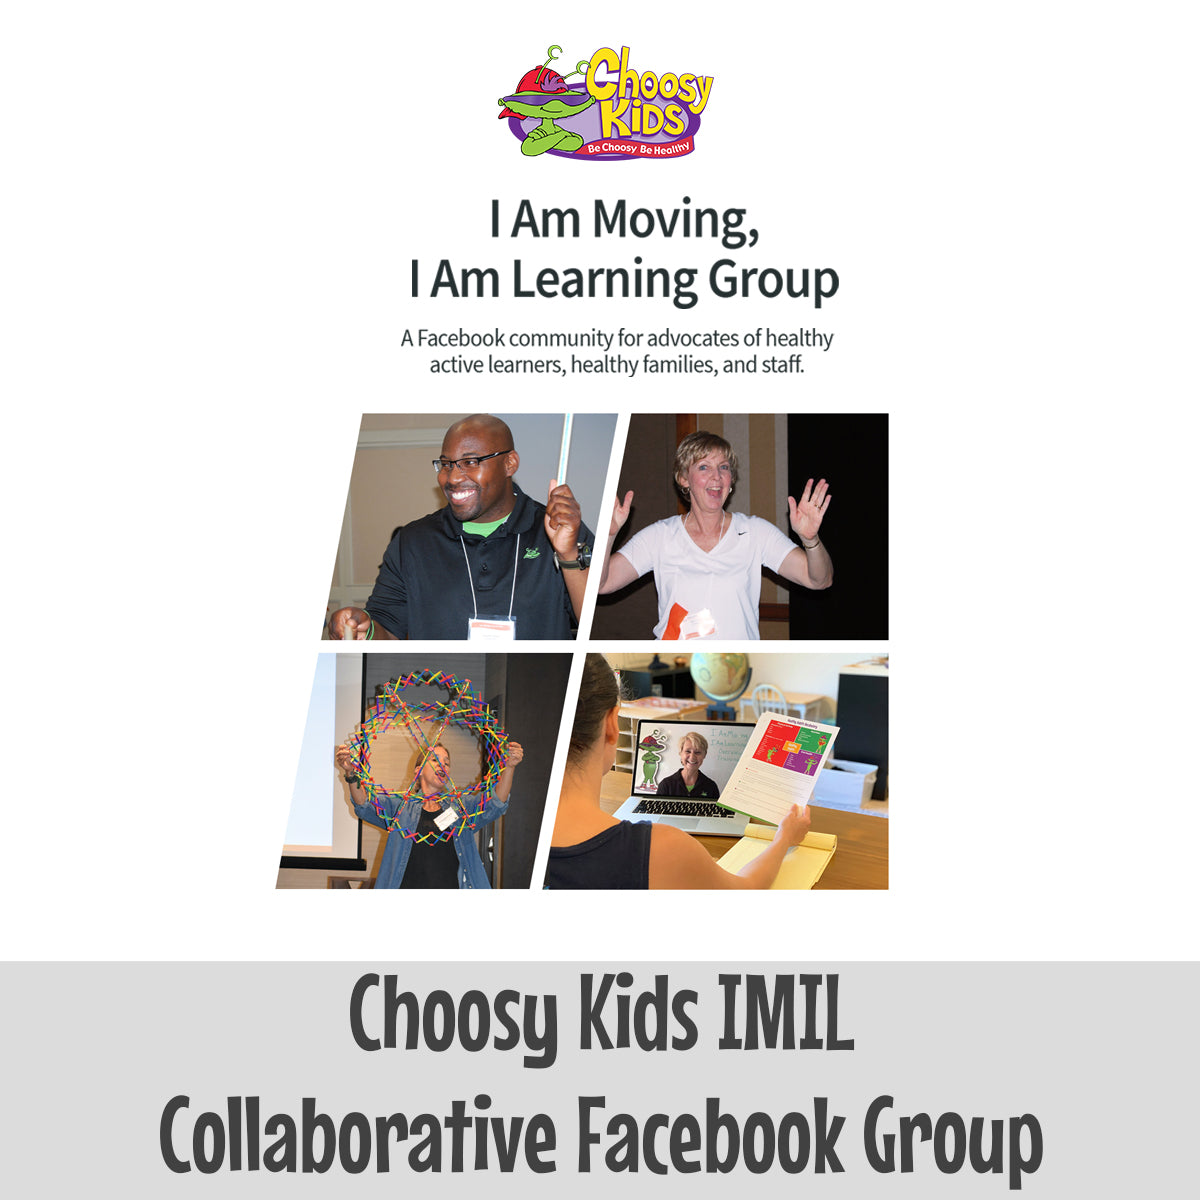 Choosy Kids IMIL Collaborative Facebook Group